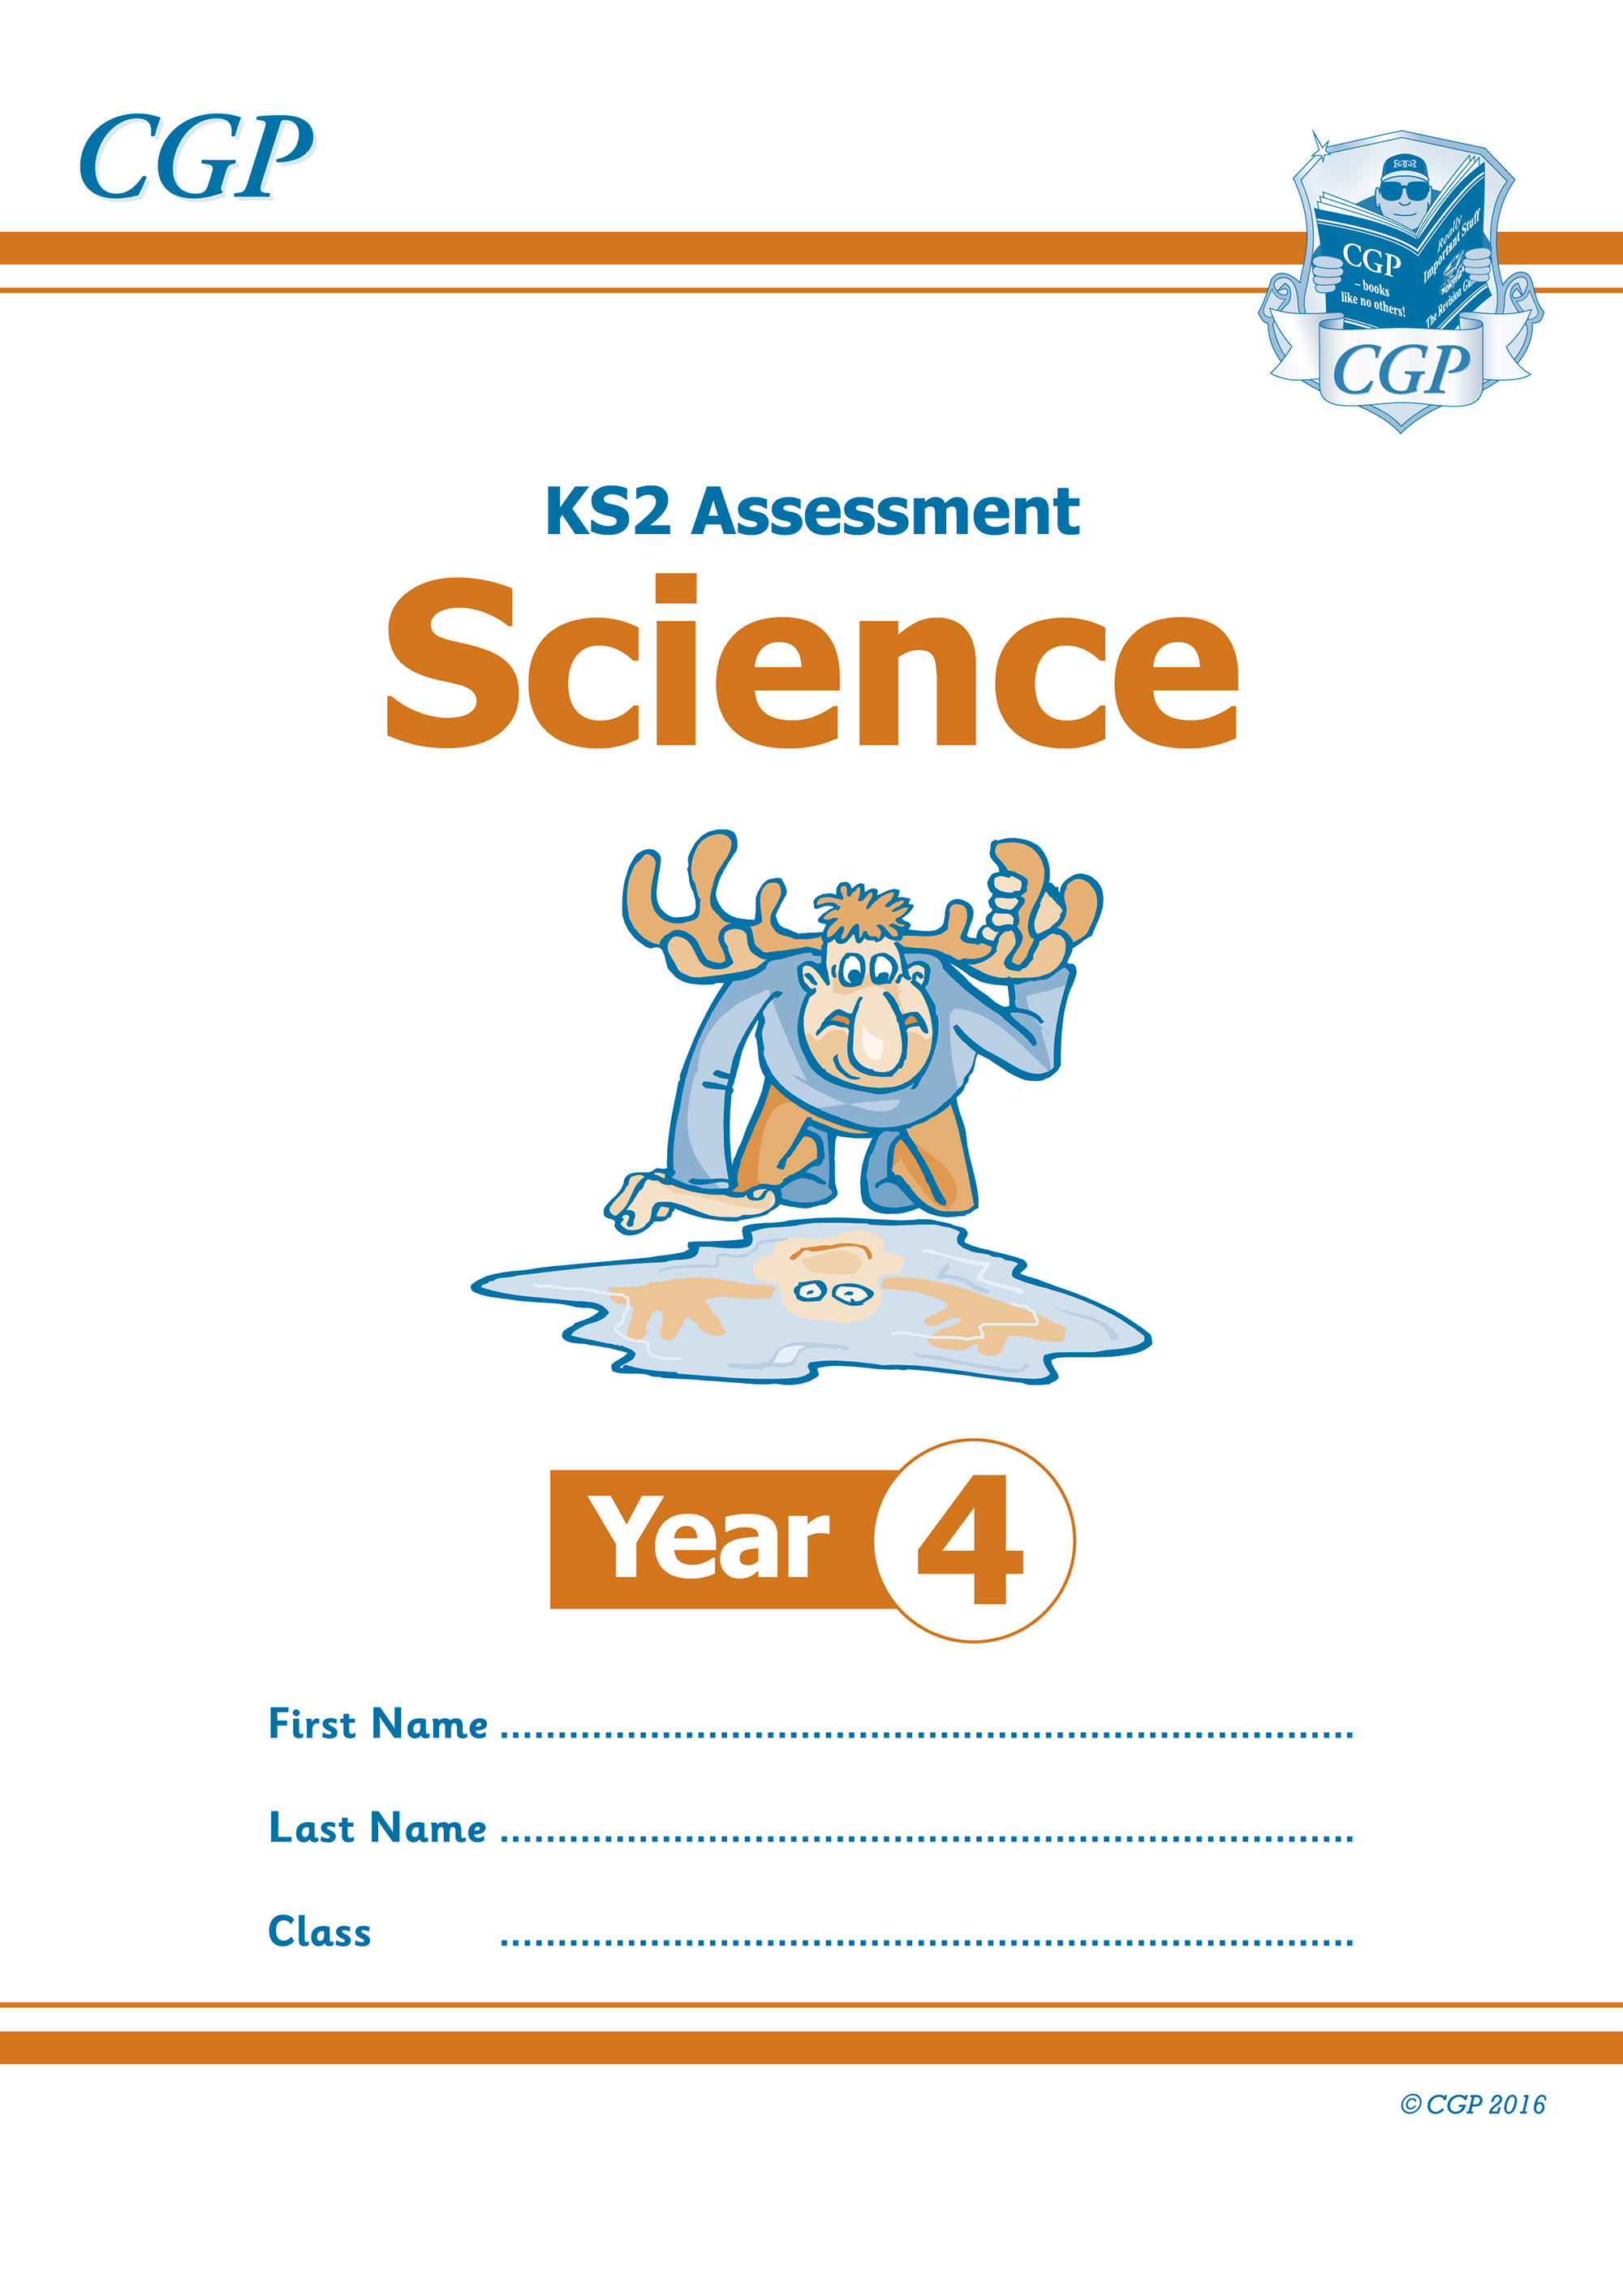 S4P21 - KS2 Assessment: Science - Year 4 Test